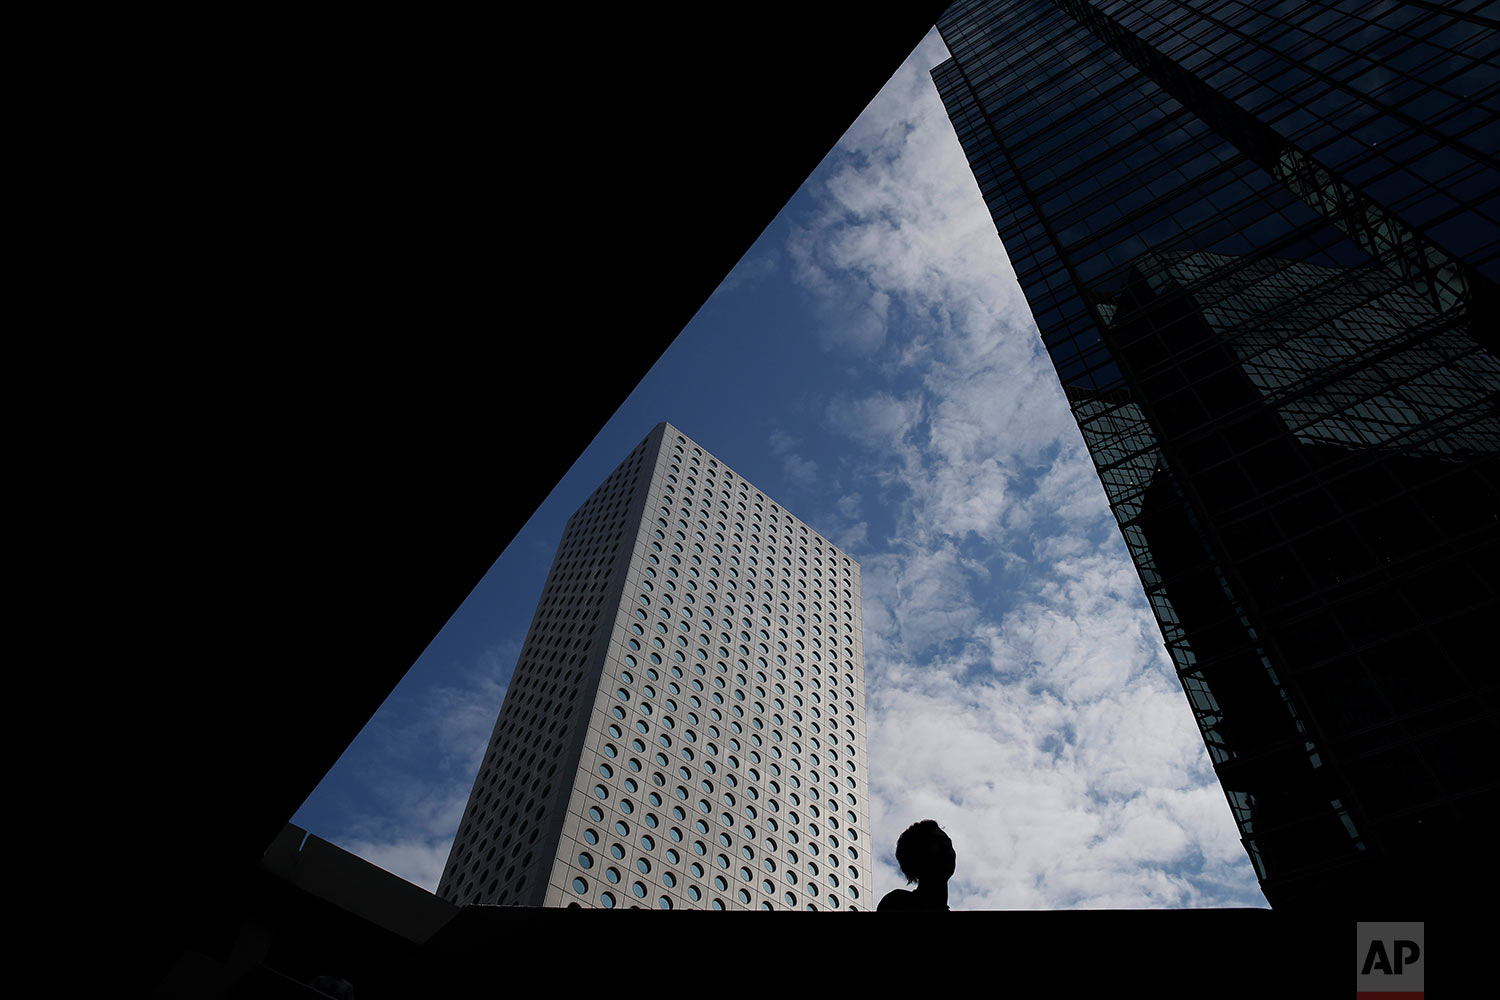 A man walks down the stairs in the Central, a business district of Hong Kong, Thursday, Nov. 9, 2017.  (AP Photo/Kin Cheung)